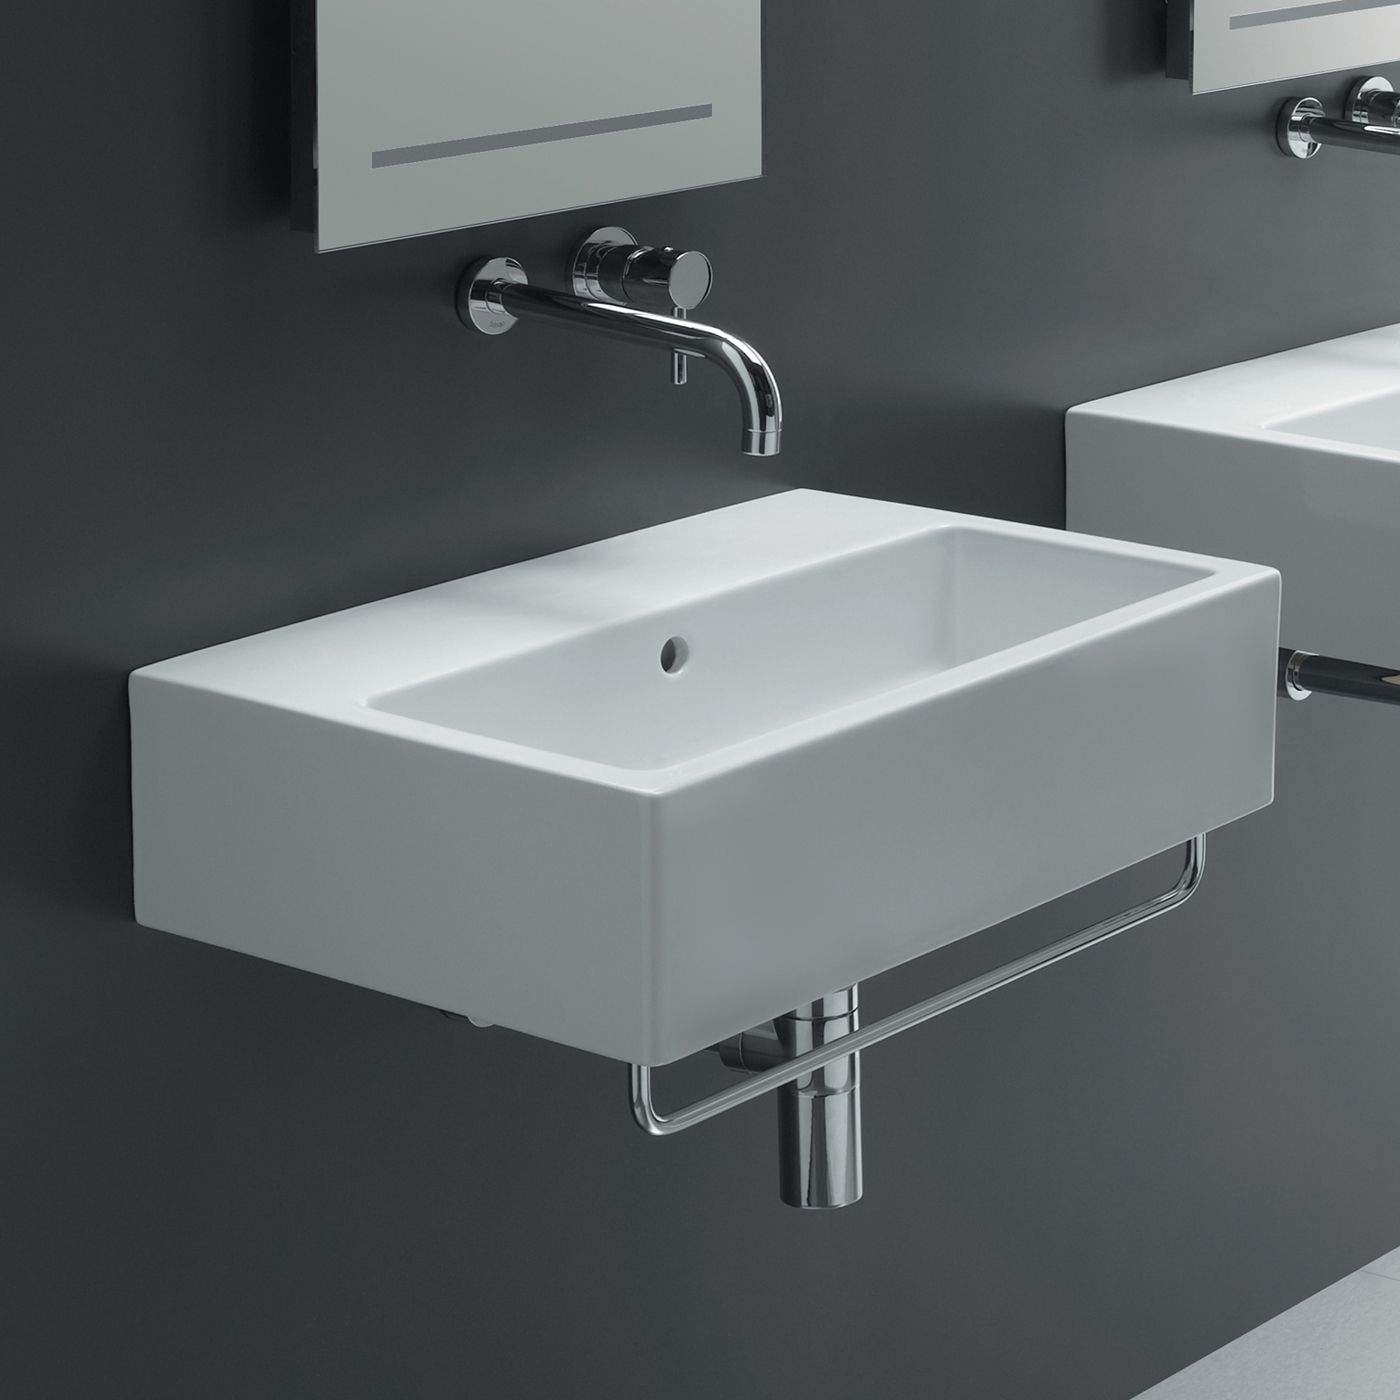 Bathroom Sinks Stores bissonnet 20150-st area boutique ice 60 wall mount bathroom sink